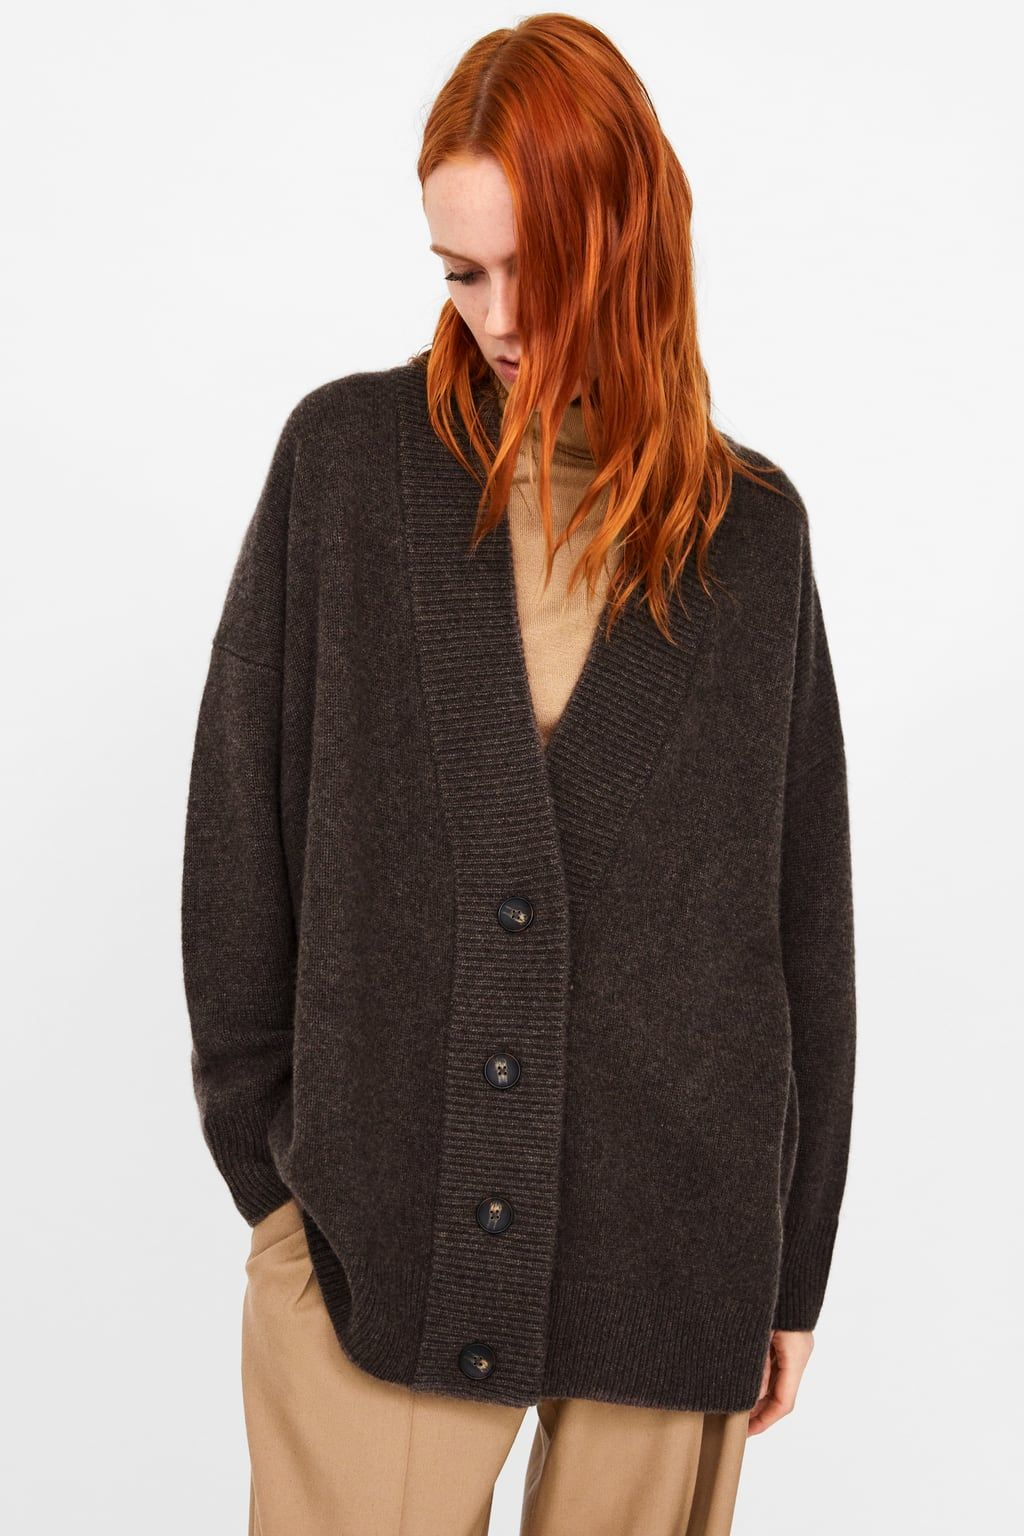 3f50845fa5 Image 4 of BUTTONED CASHMERE CARDIGAN from Zara